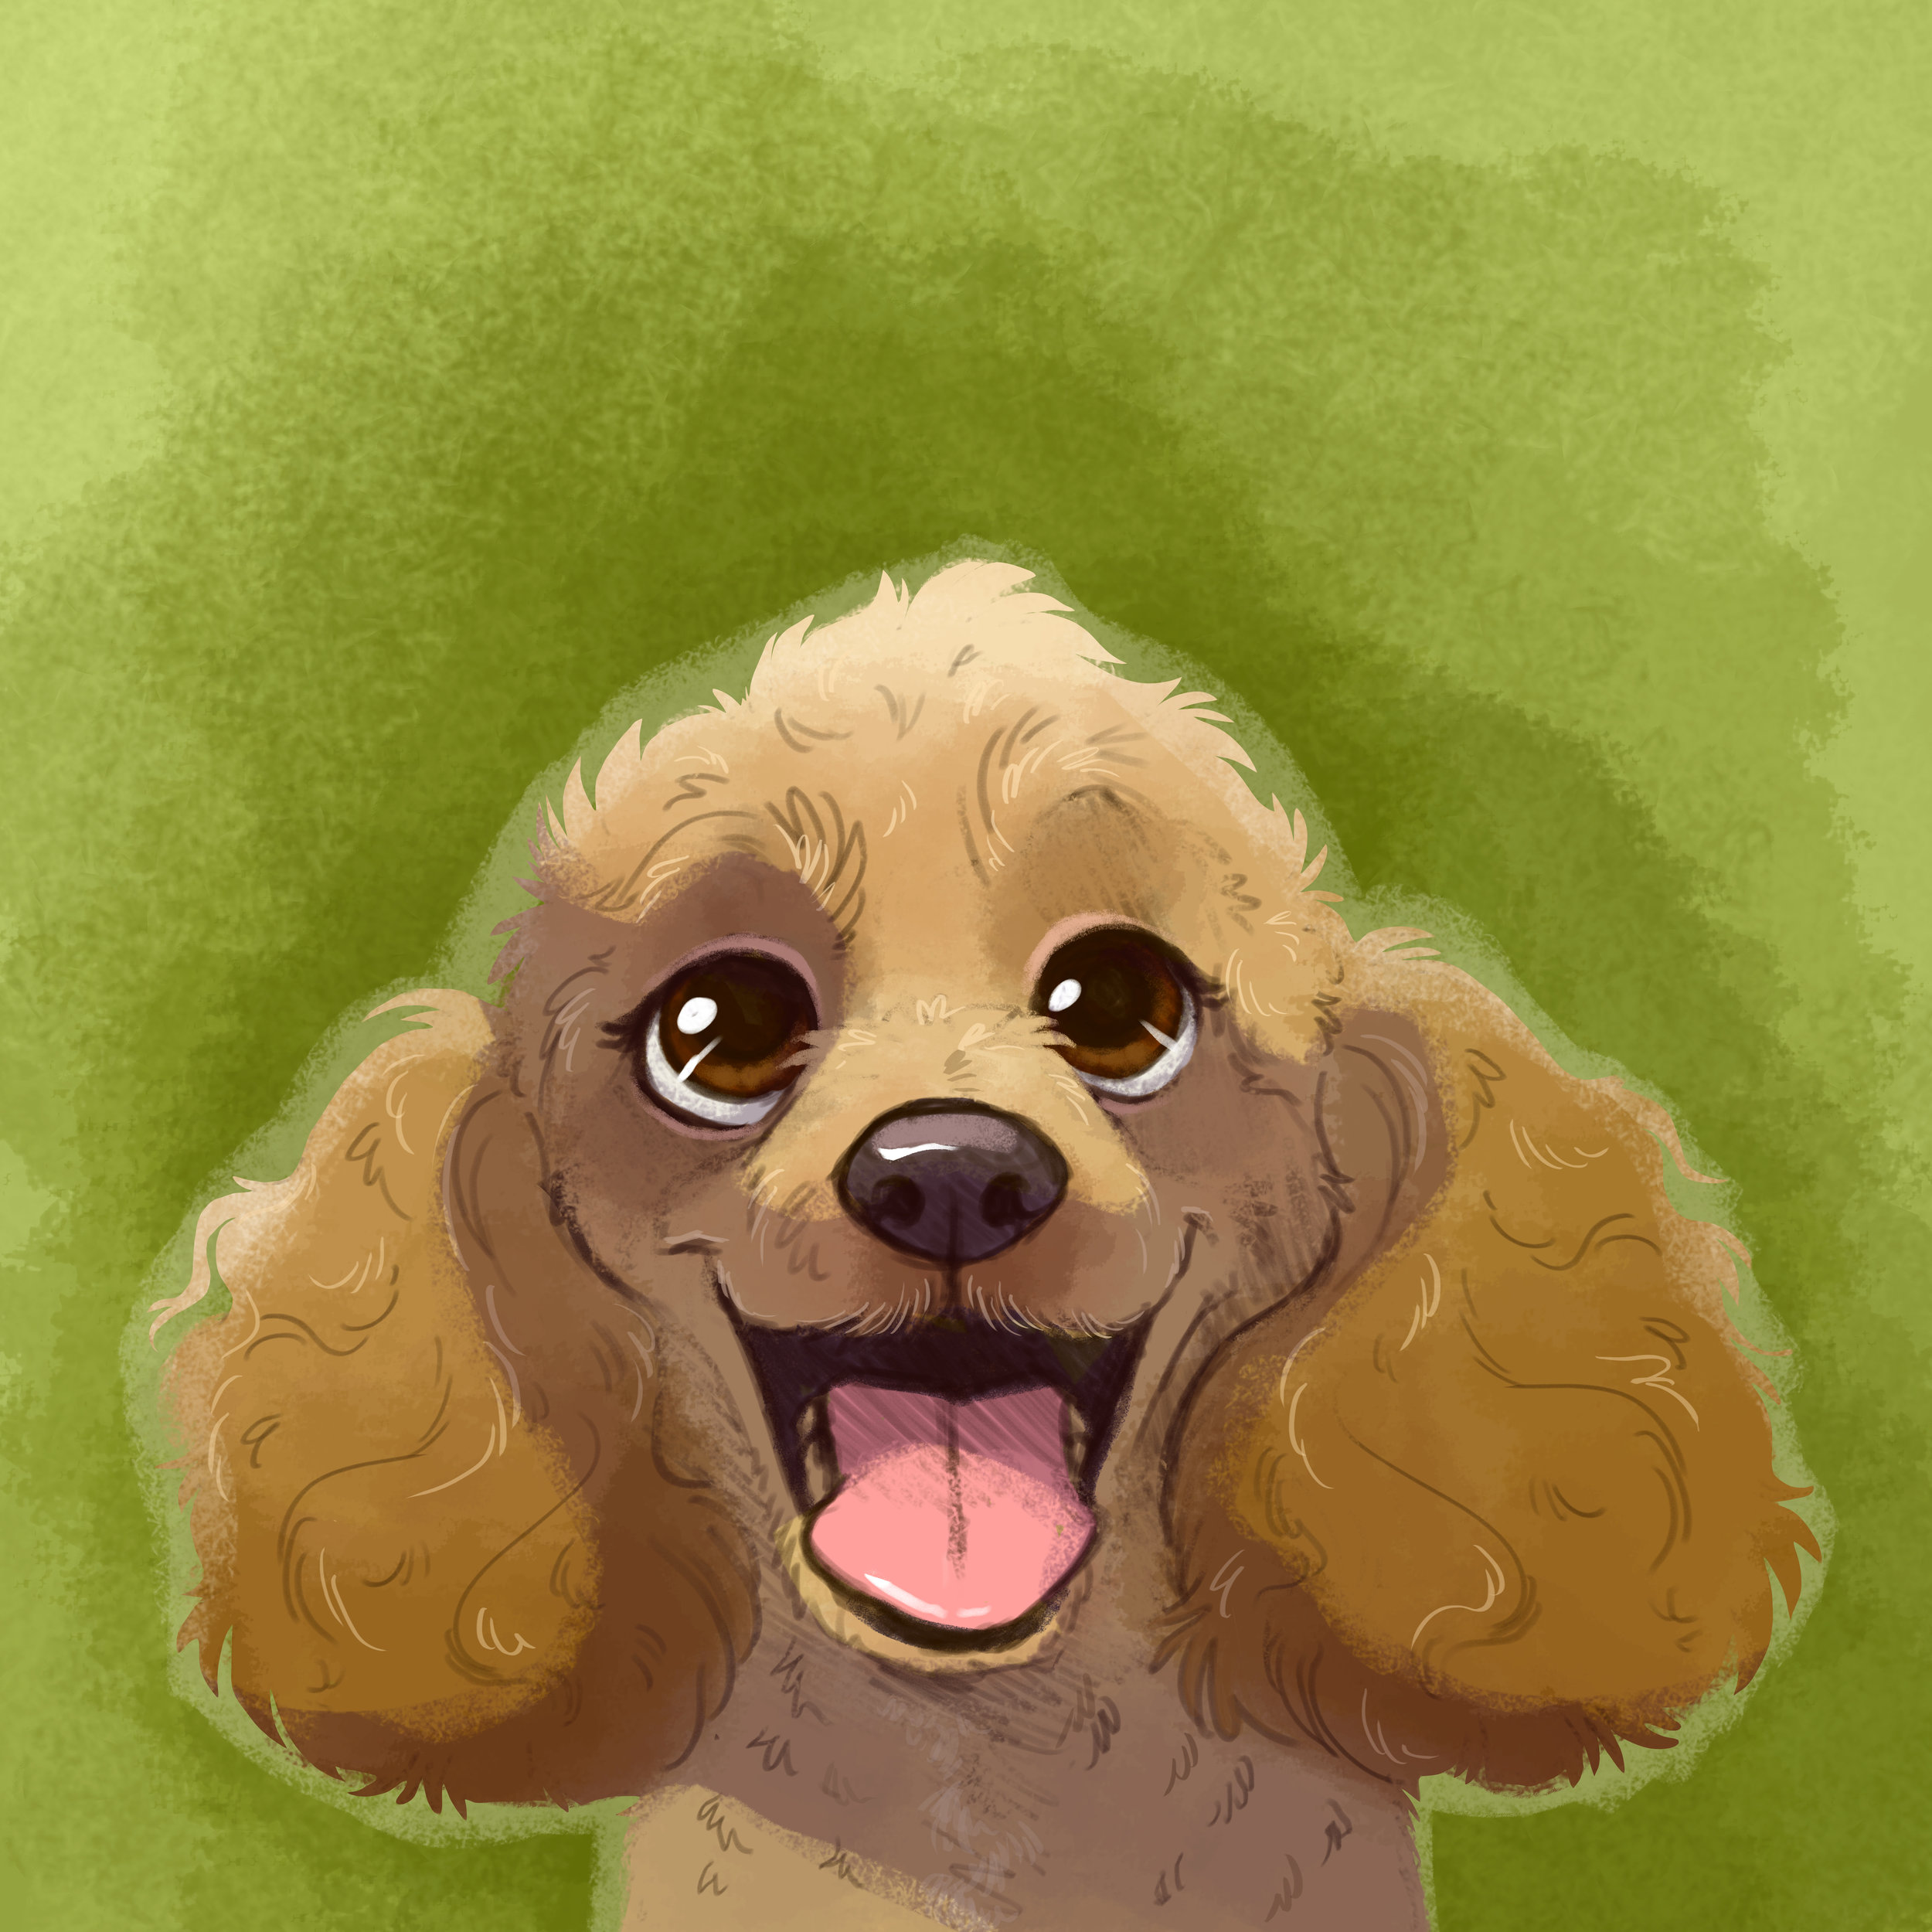 Dottie_IllustratedPortrait1.jpg